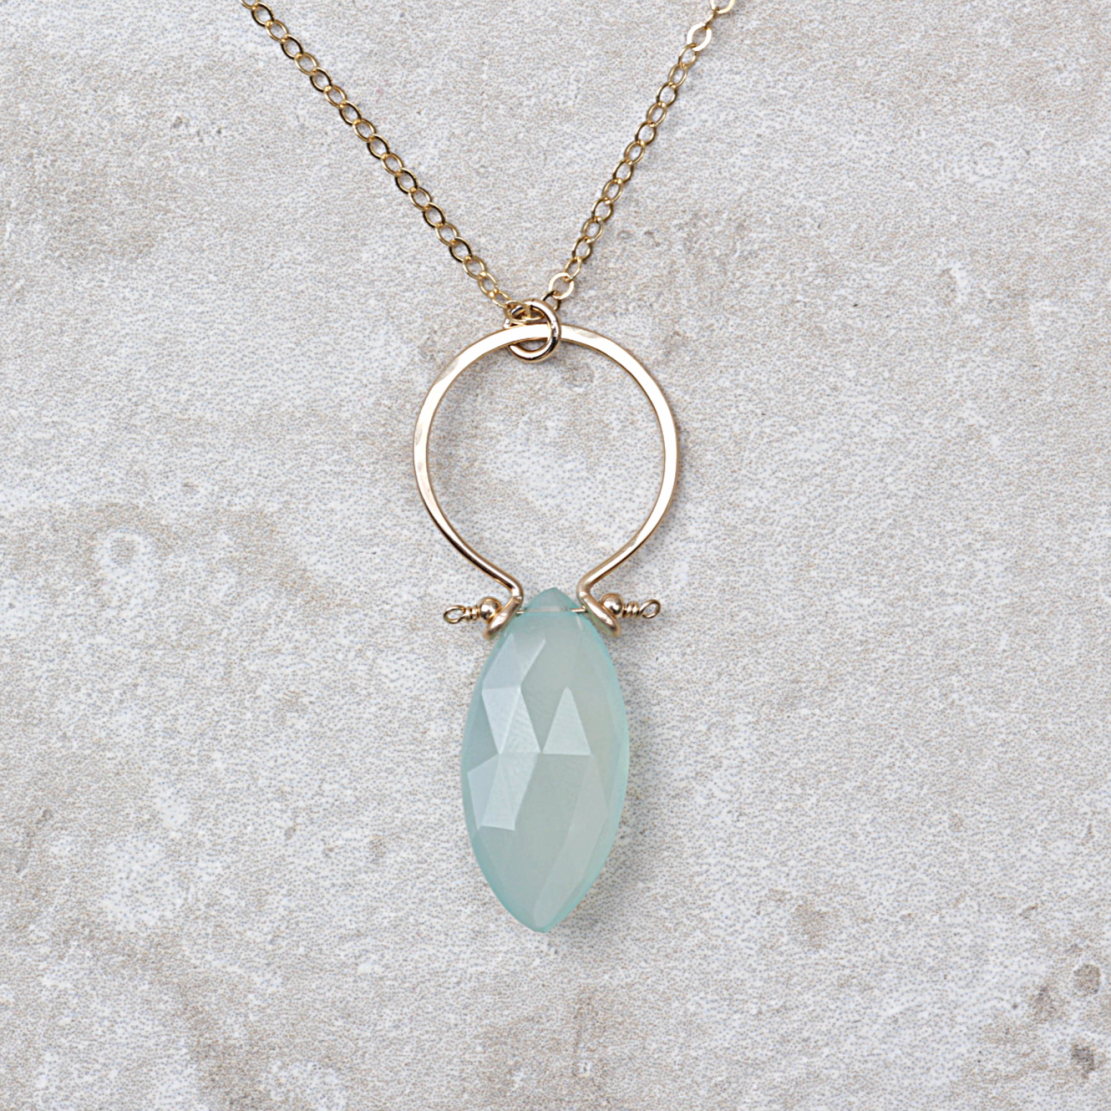 Chalcedony Halo Necklace - Coco and Duckie